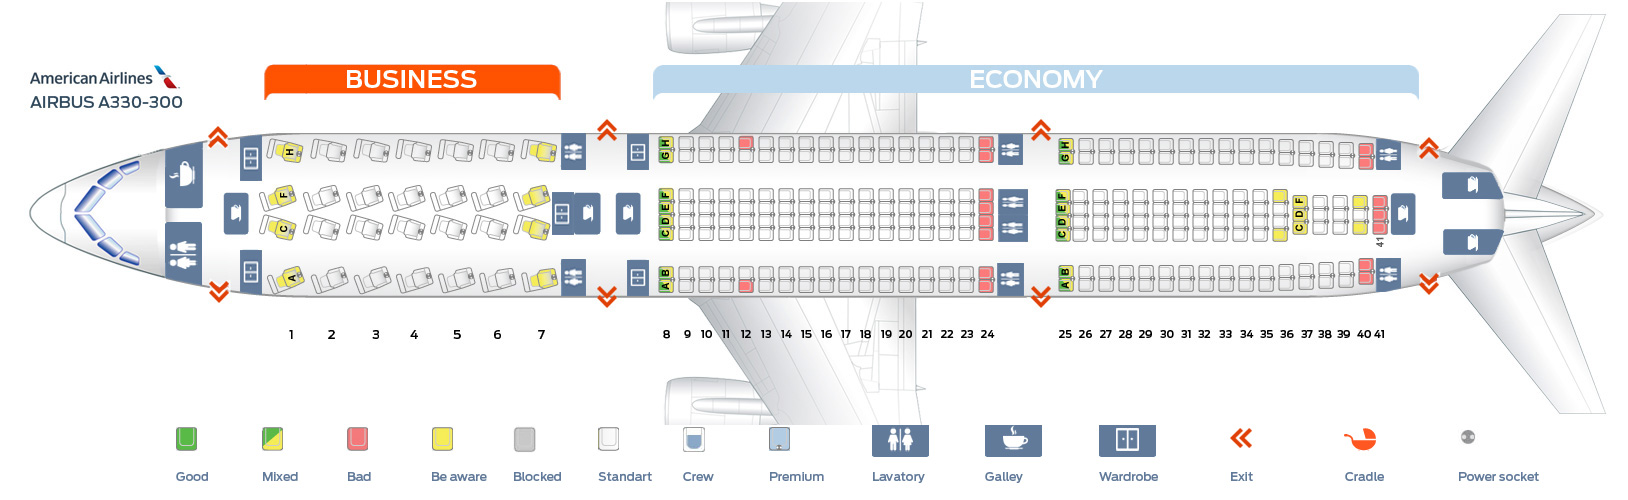 Seat_map_American_Airlines_Airbus_A330-300